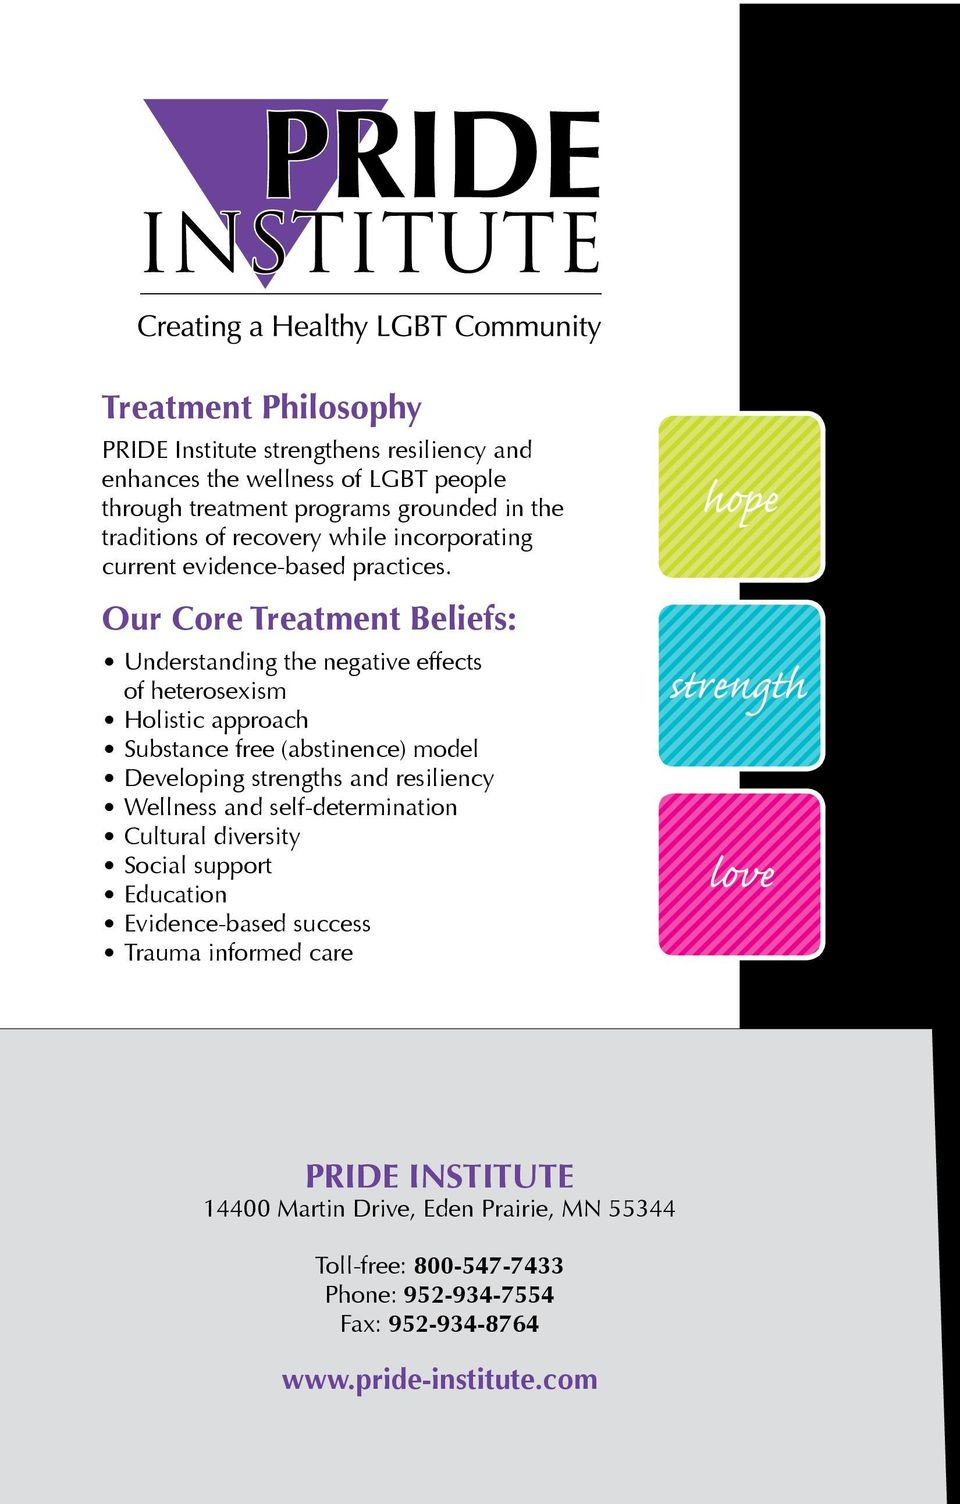 Our Core Treatment Beliefs: Understanding the negative effects of heterosexism Holistic approach Substance free (abstinence) model Developing strengths and resiliency